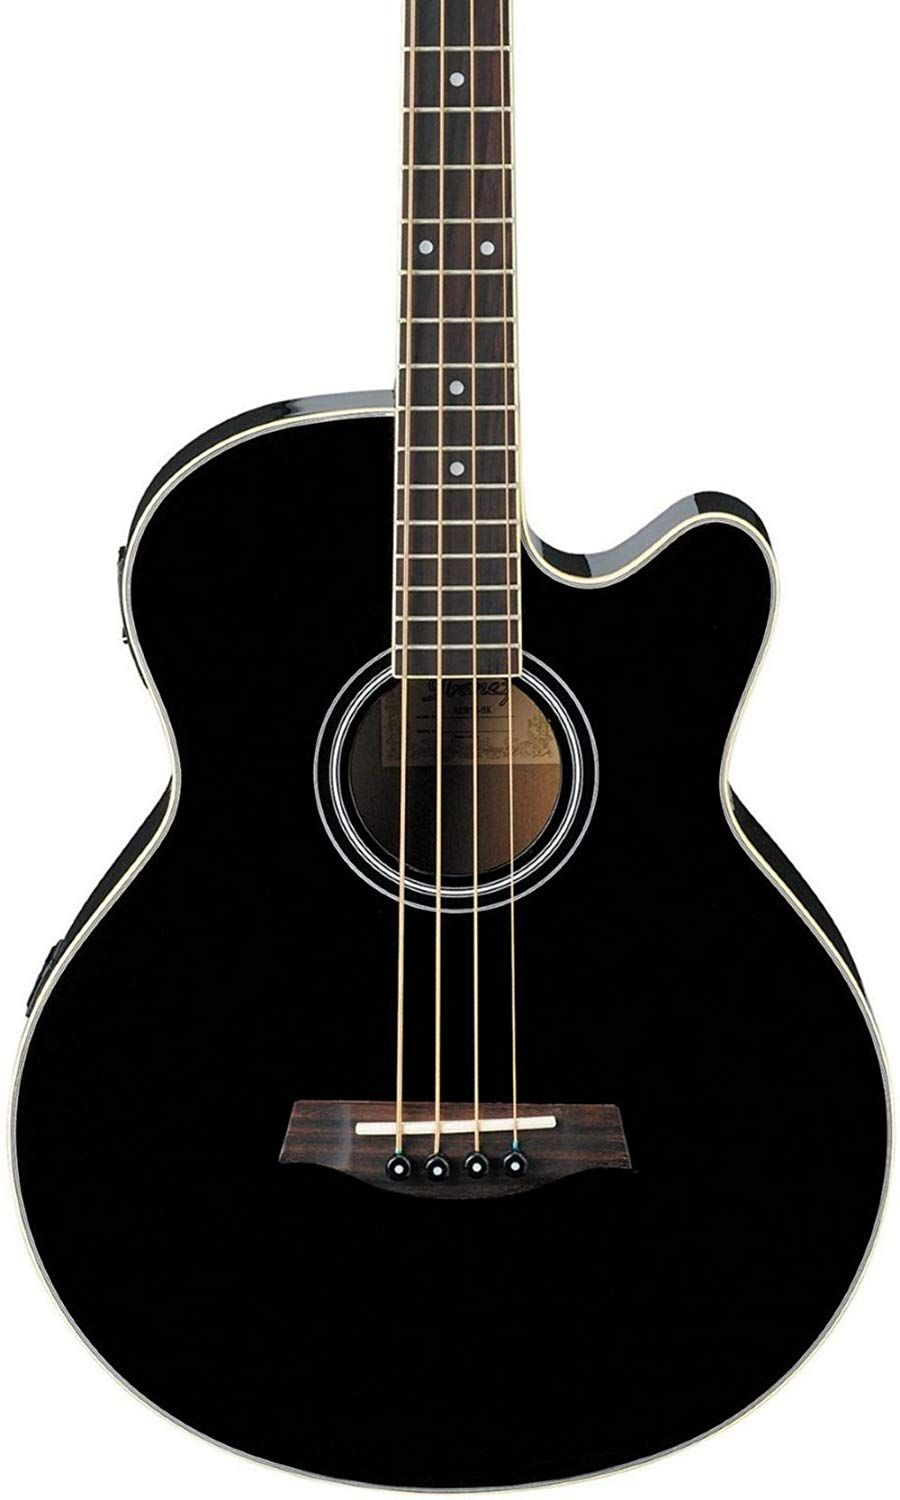 Go Through Our Reviews To Learn How You Should Choose The Best Acoustic Bass Guitar As A Beginner And Based On Your D Acoustic Bass Acoustic Bass Guitar Guitar